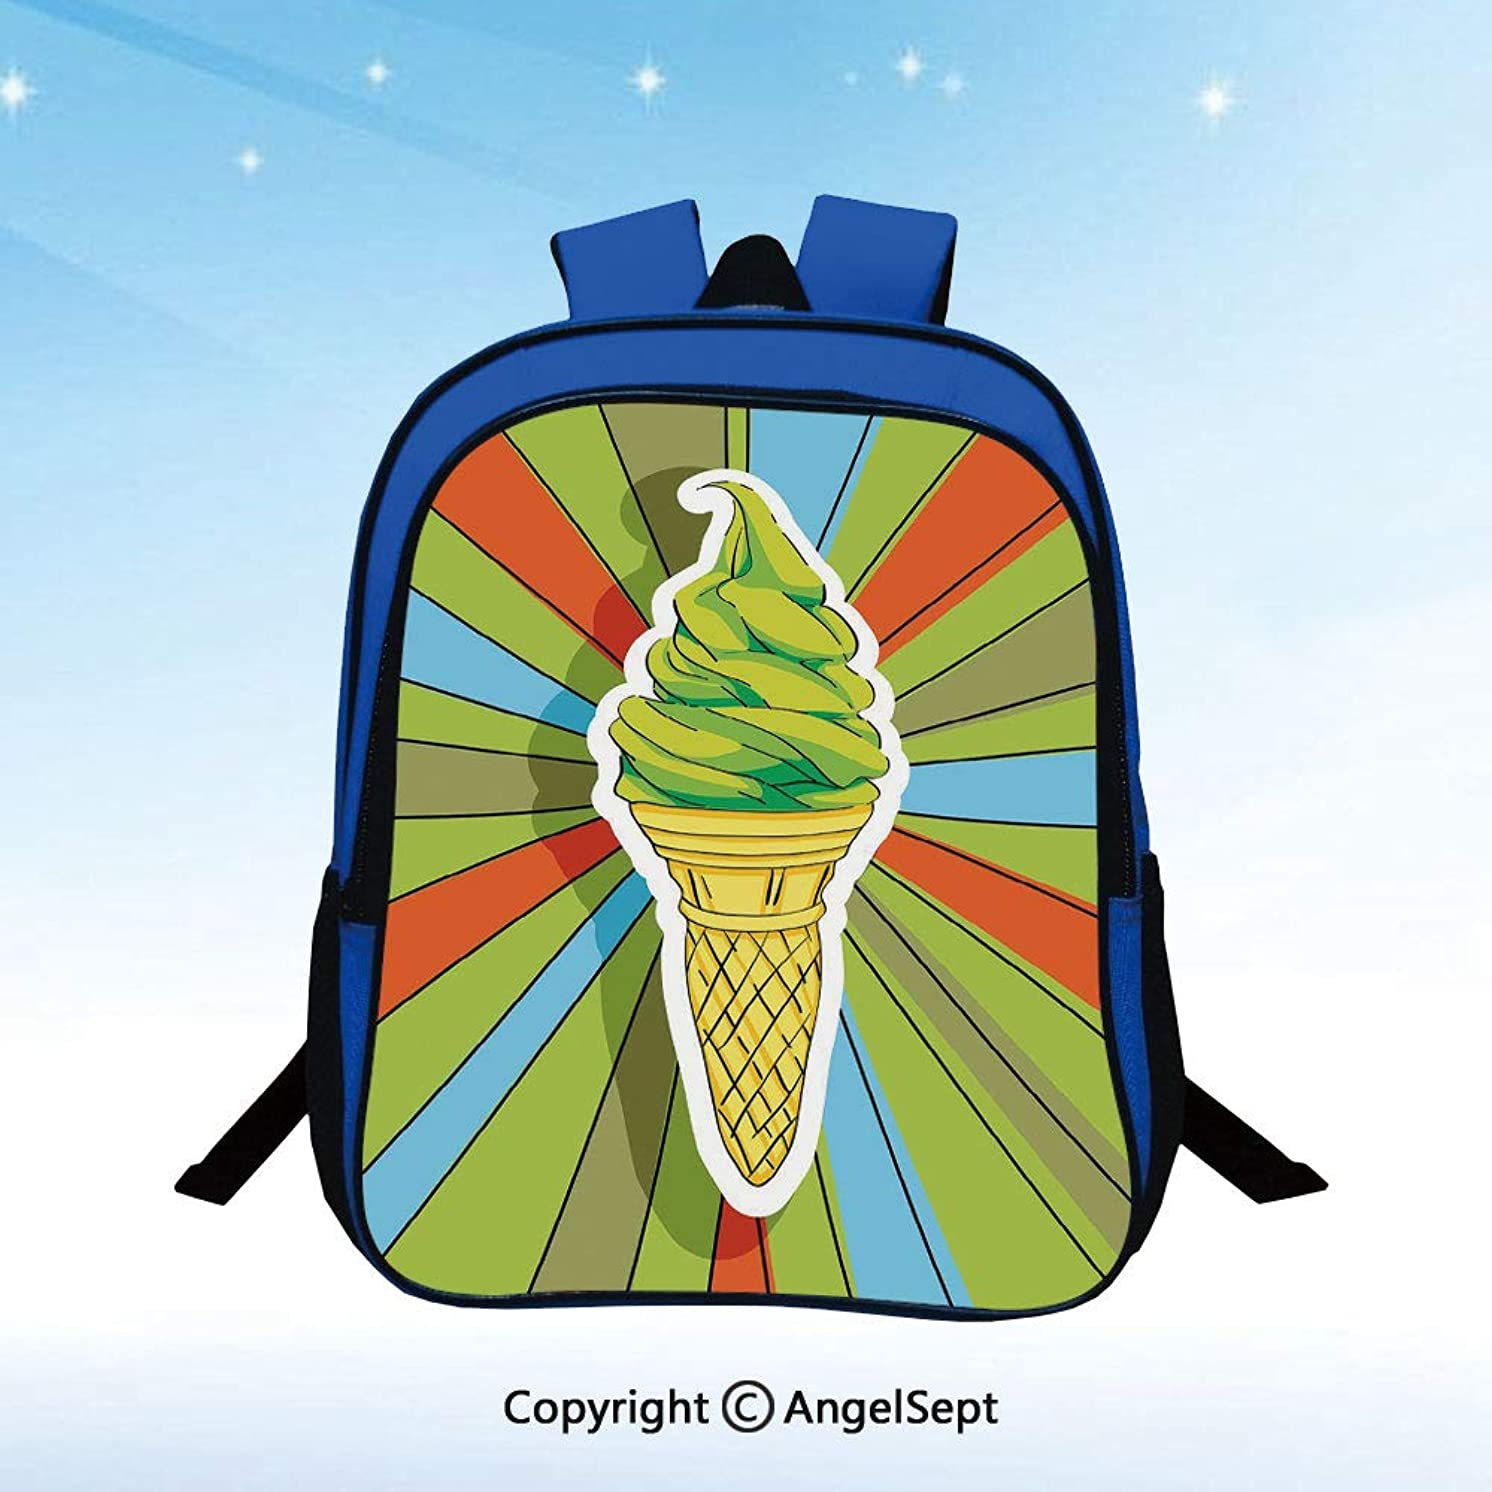 Children's Kids Backpack Cute Kindergarten Bag Hand Drawn Ice Cream on Cone with Colorful Rays Coming out from the Middle Decorative Lightweight Waterproof School Boy Girl Snack Pack Lime Green Multi